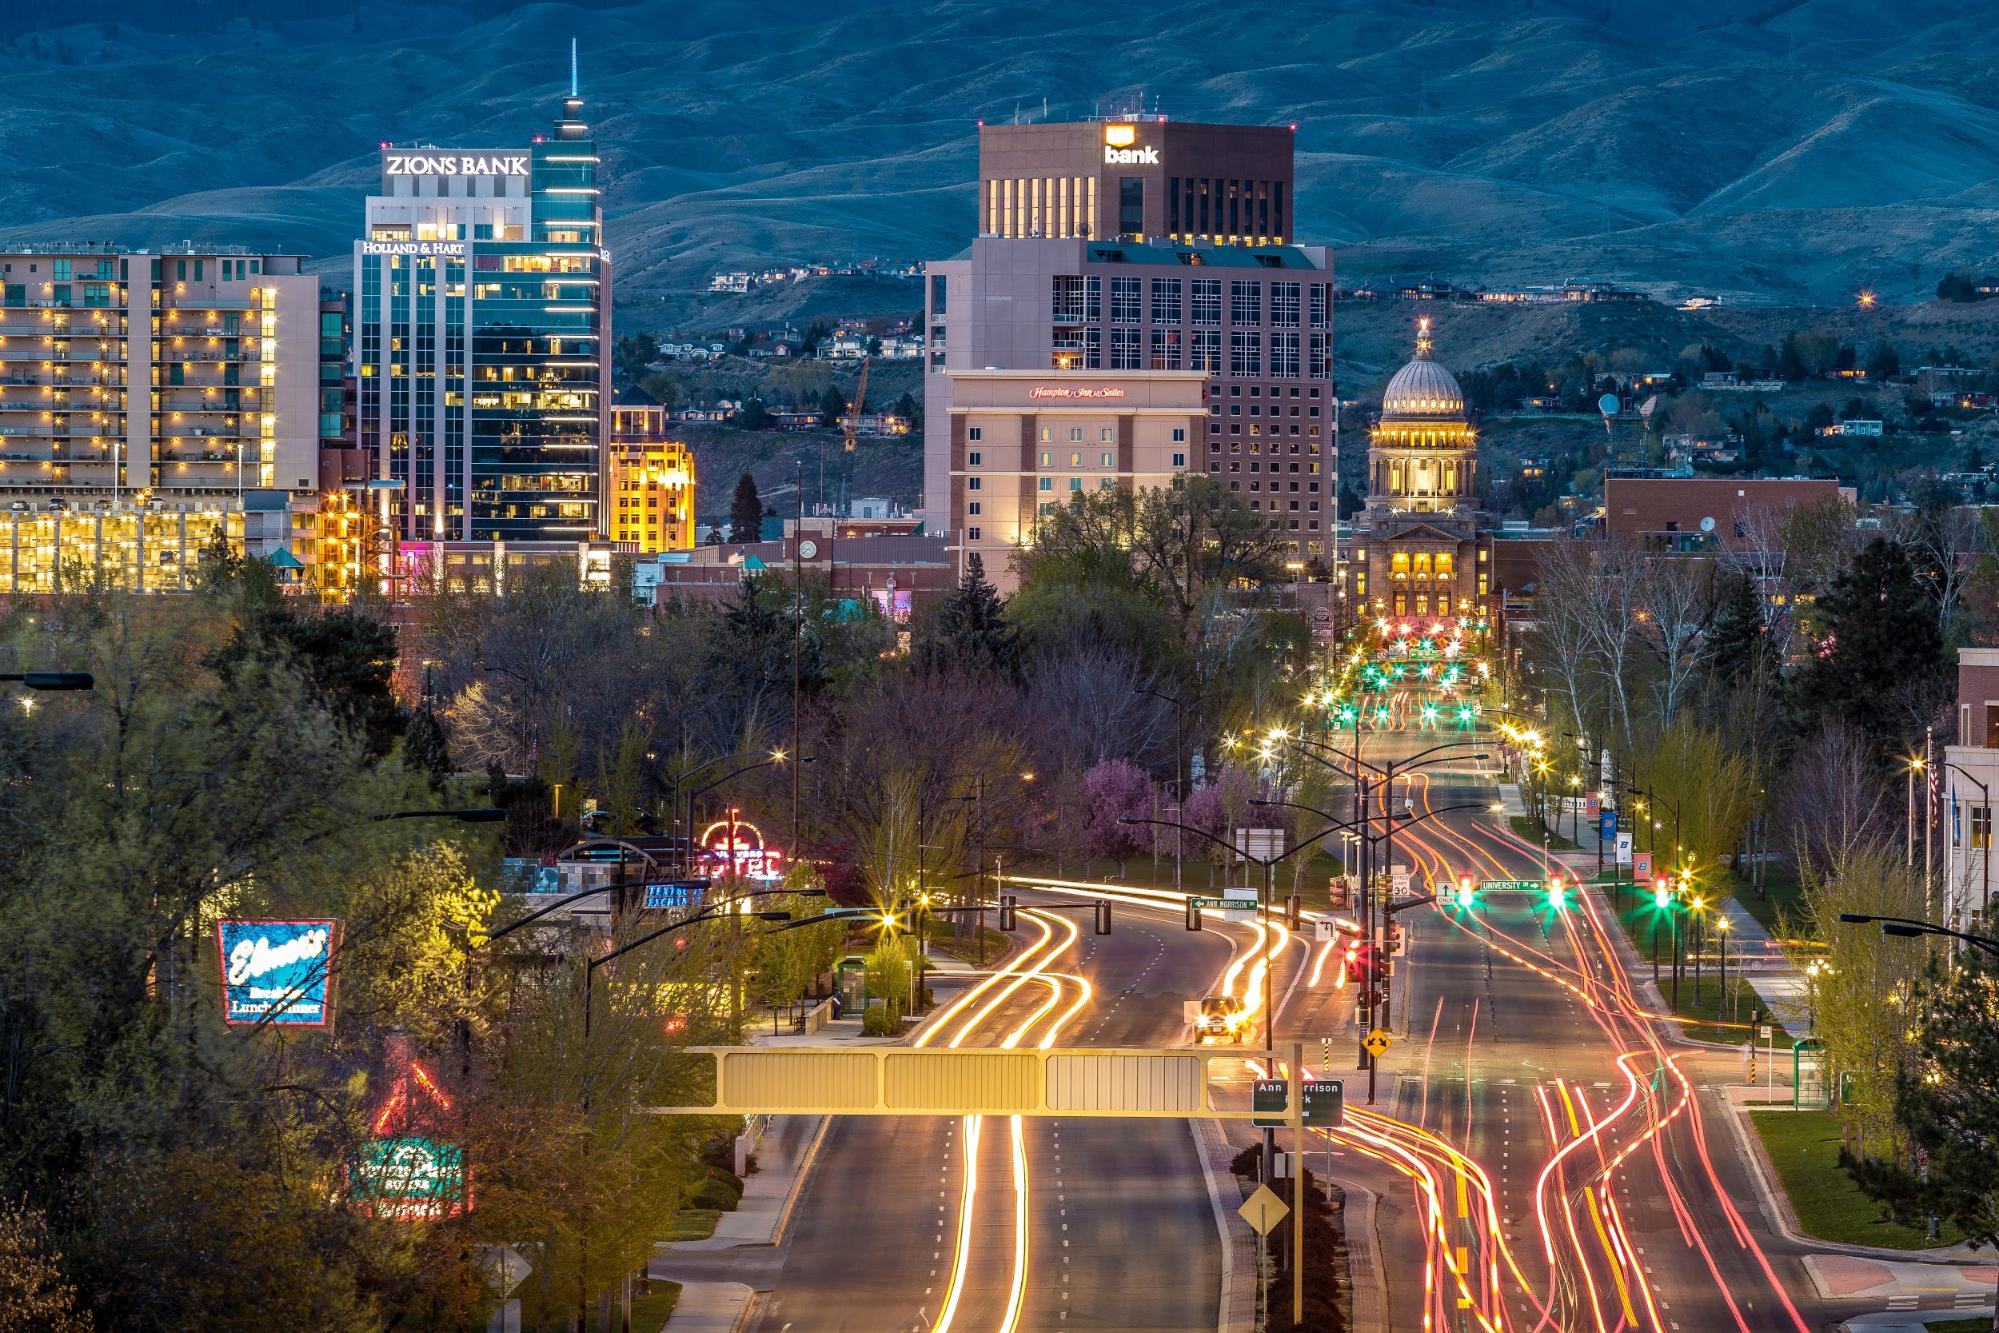 The Best Neighborhoods to Start a Business in Boise kzb real estate